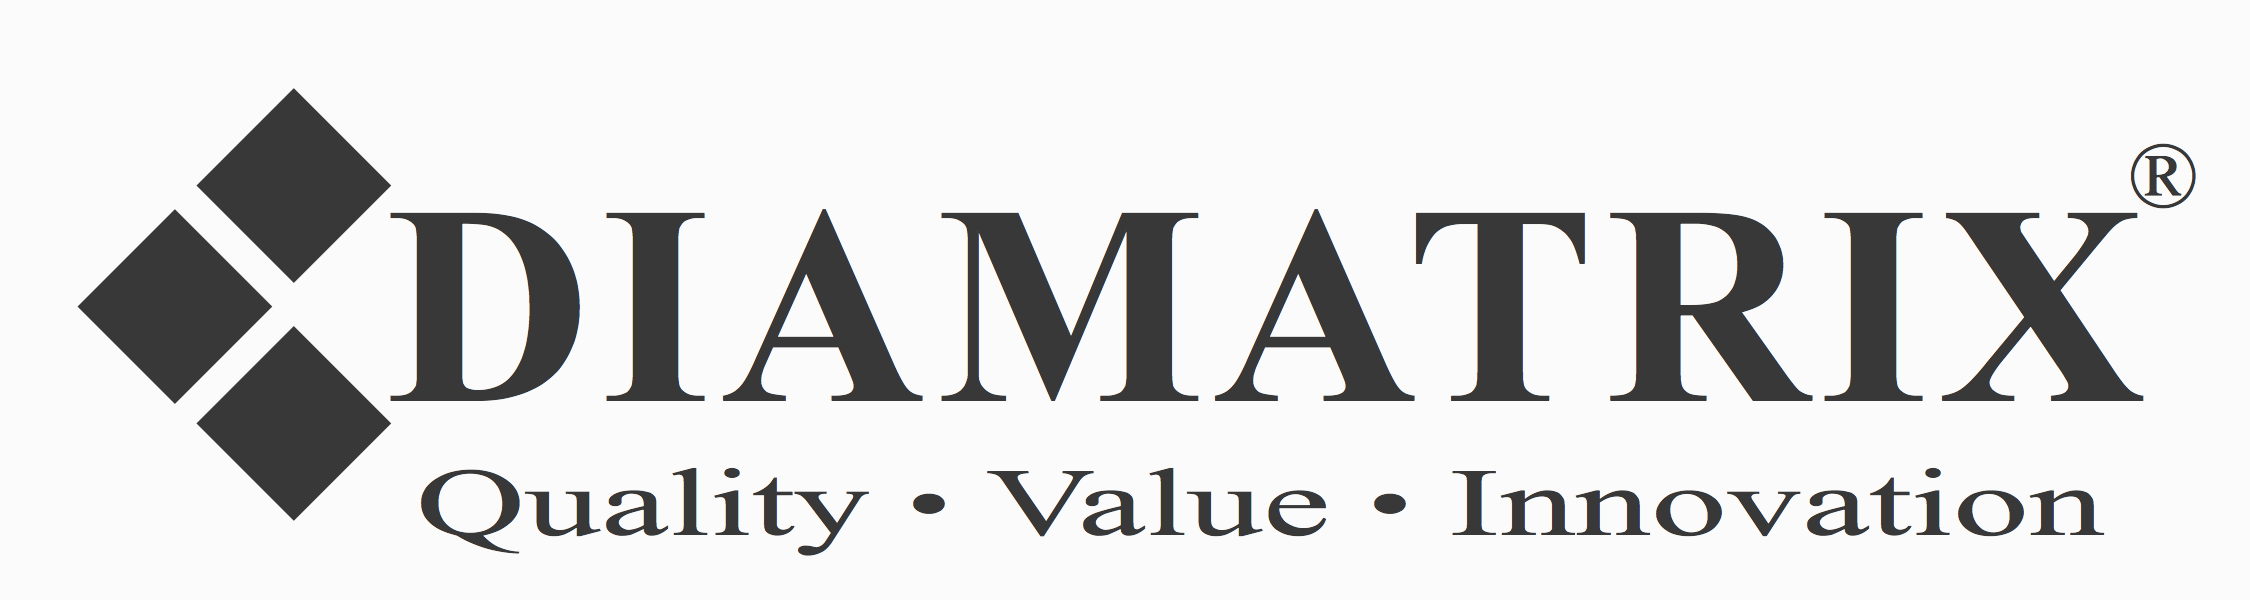 Diamatrix Logo.png